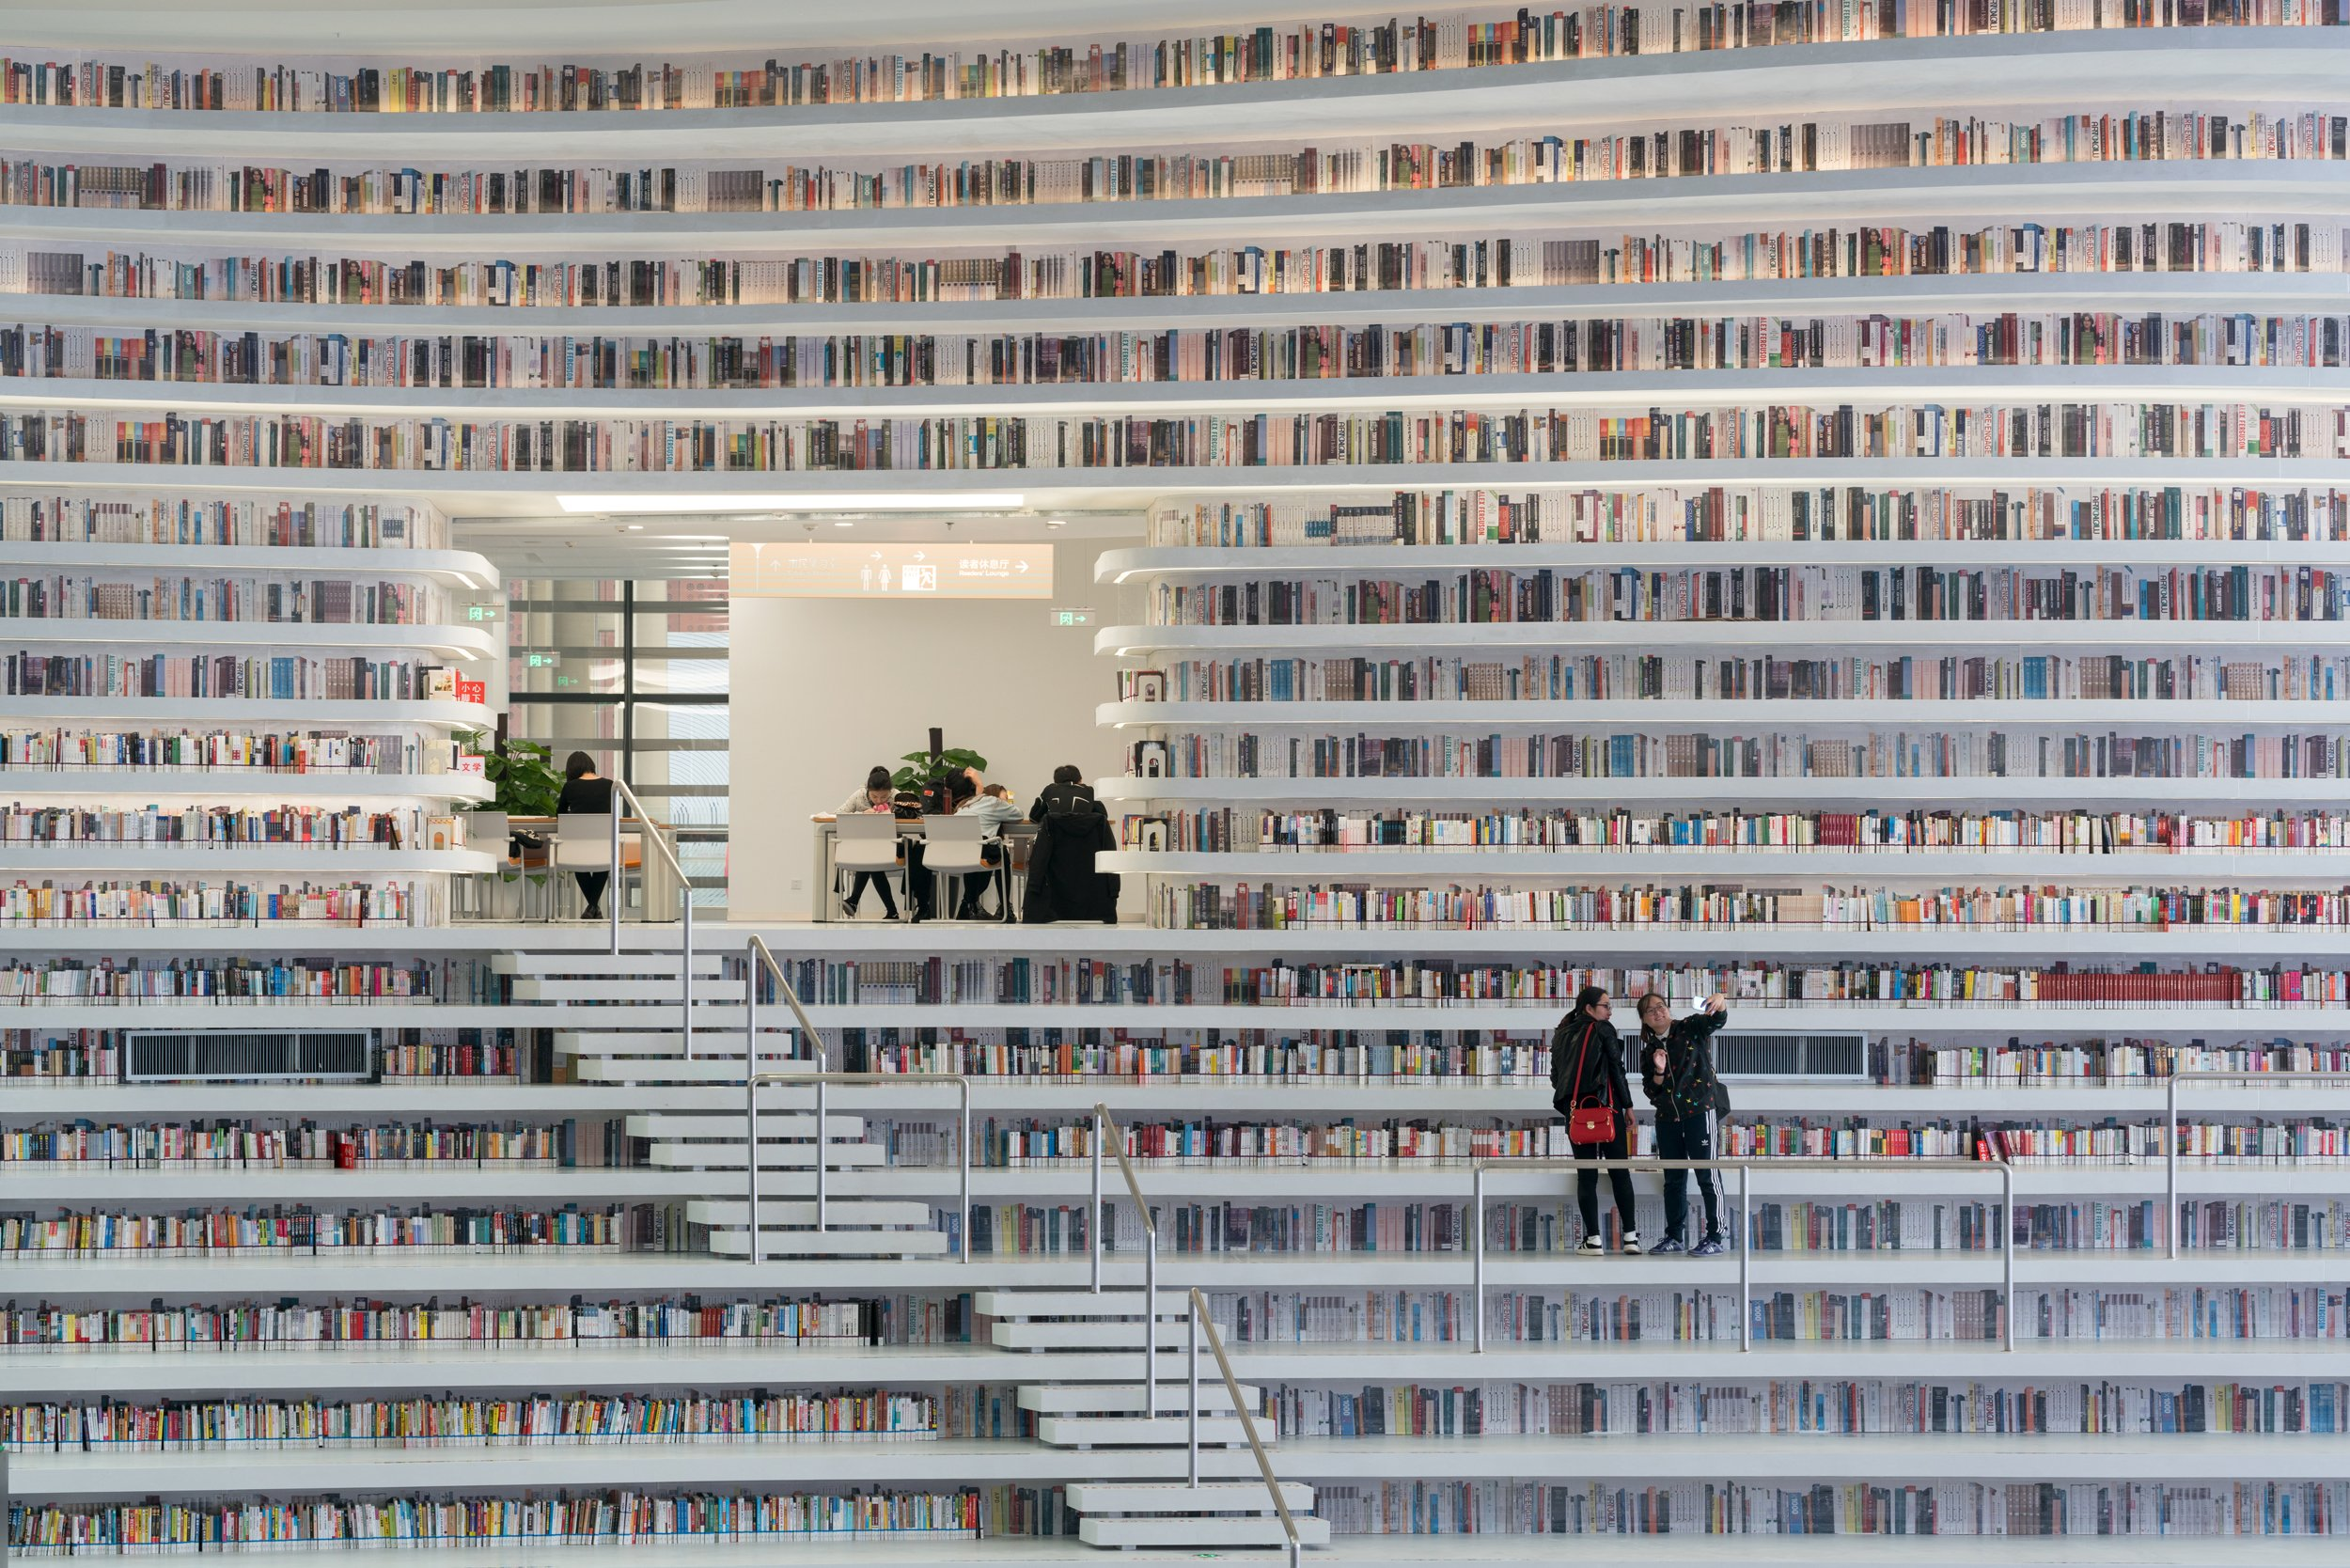 China's breathtaking, futuristic library in Tianjin is every book lover's dream